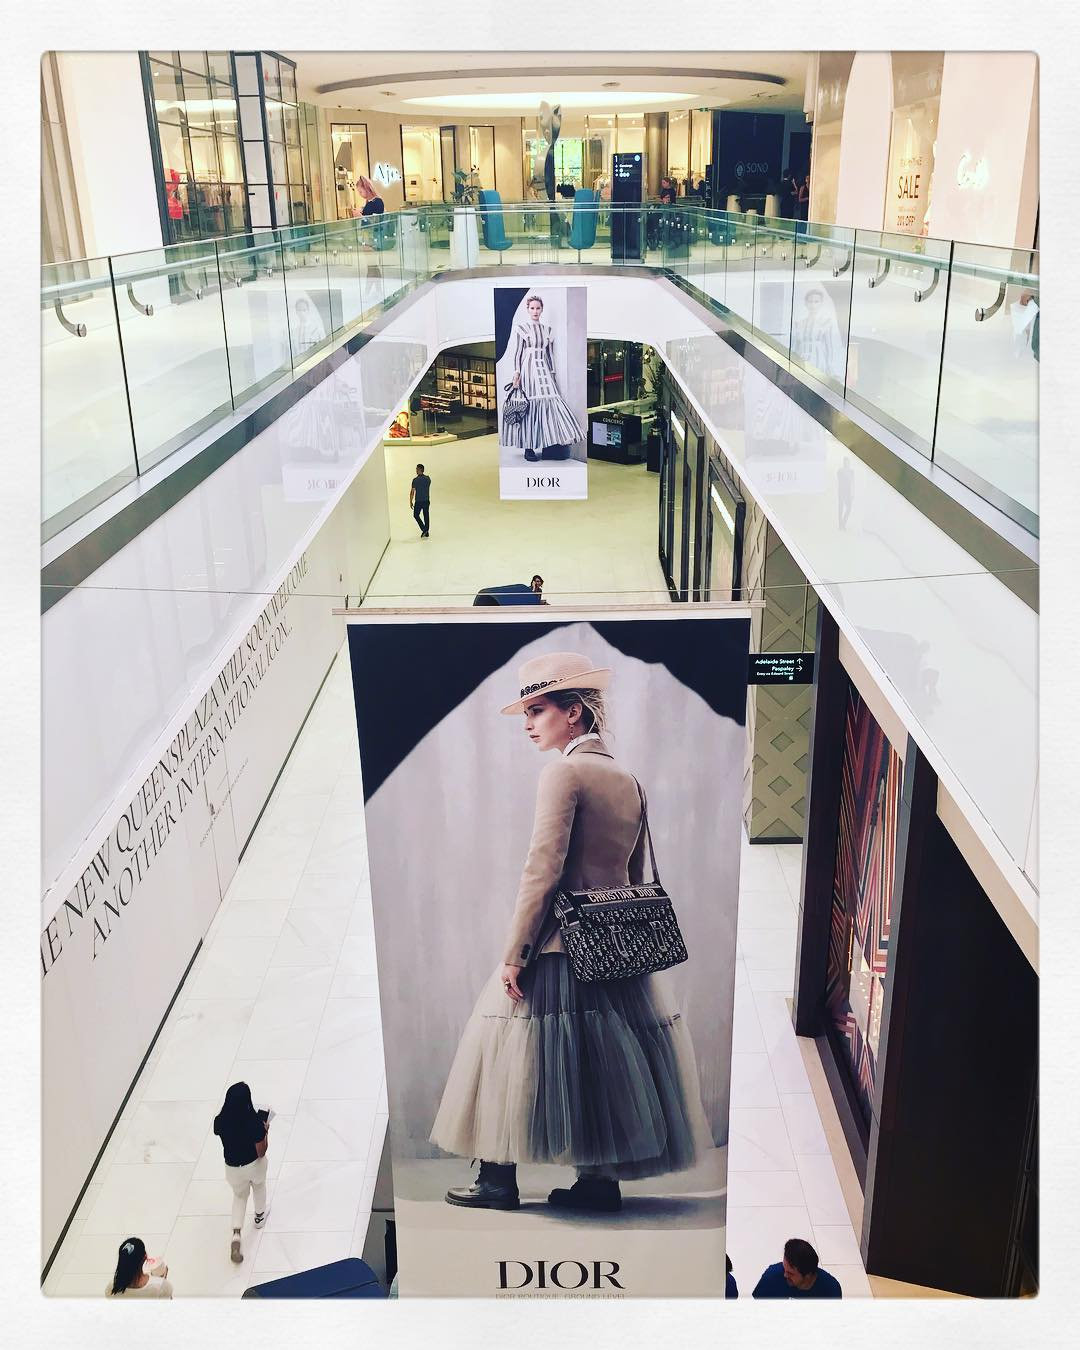 dior-at-queens-plaza-picture-perfect